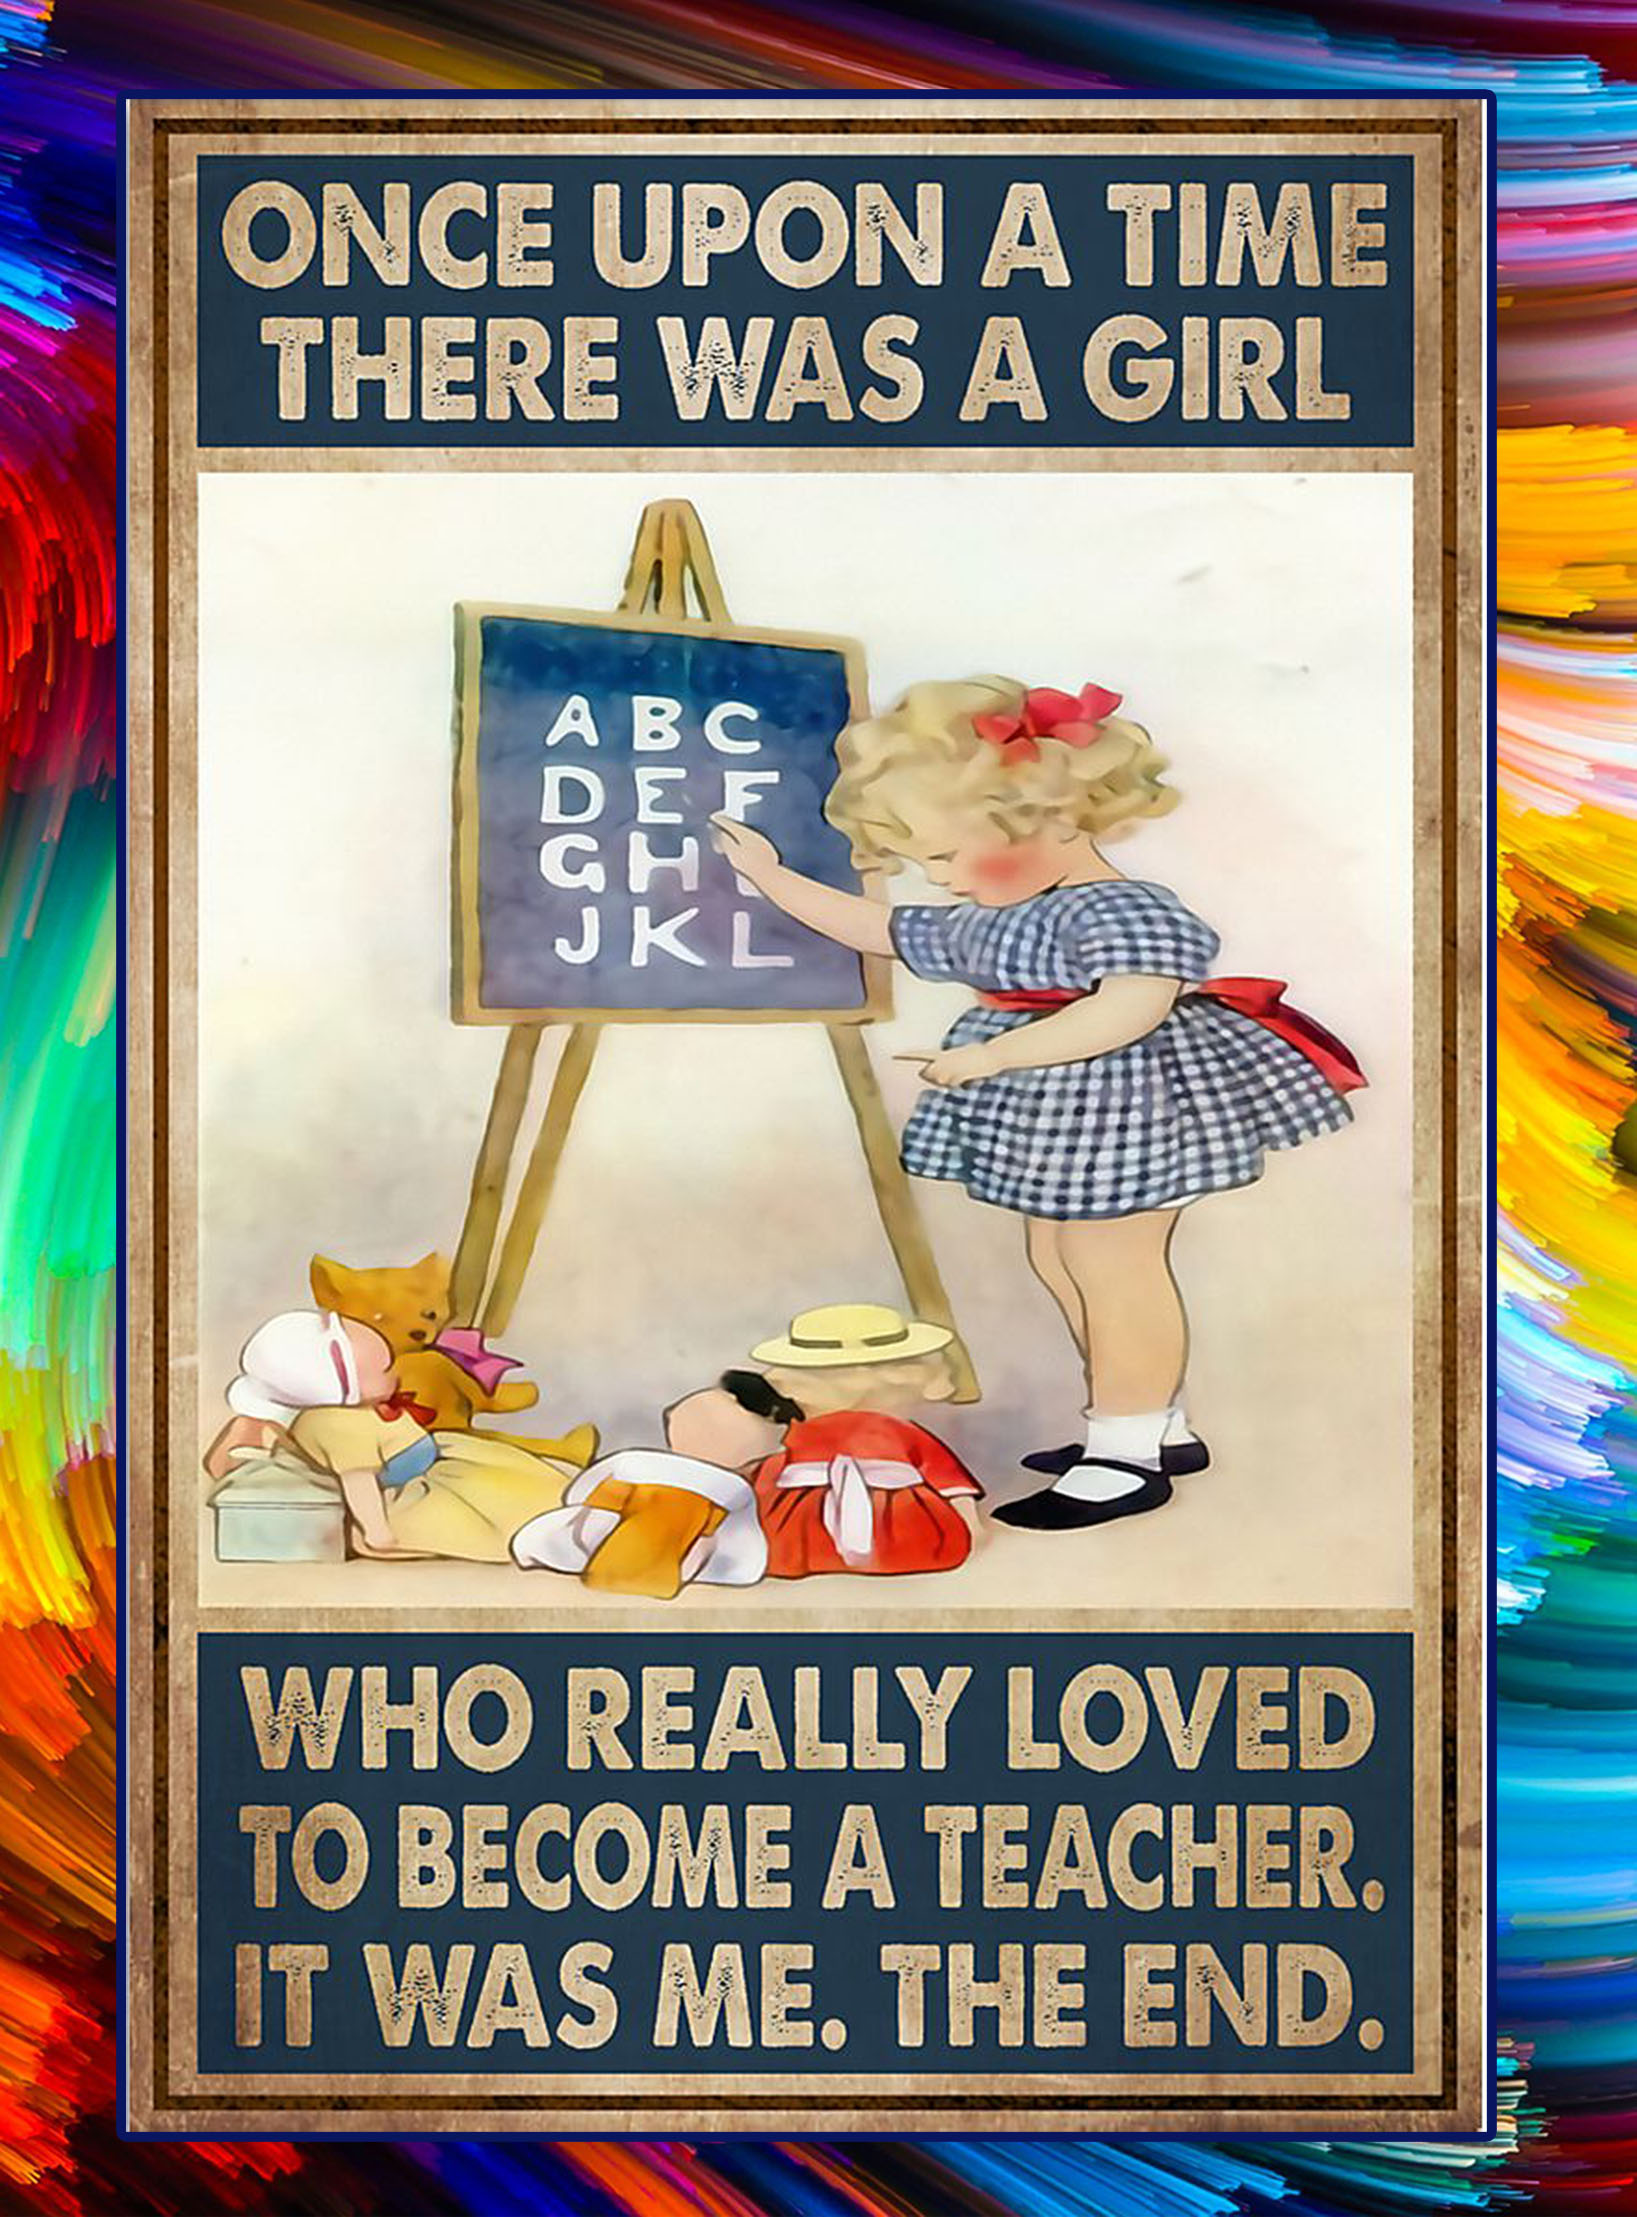 Once upon a time there was a girl who really loved to become a teacher poster - A2